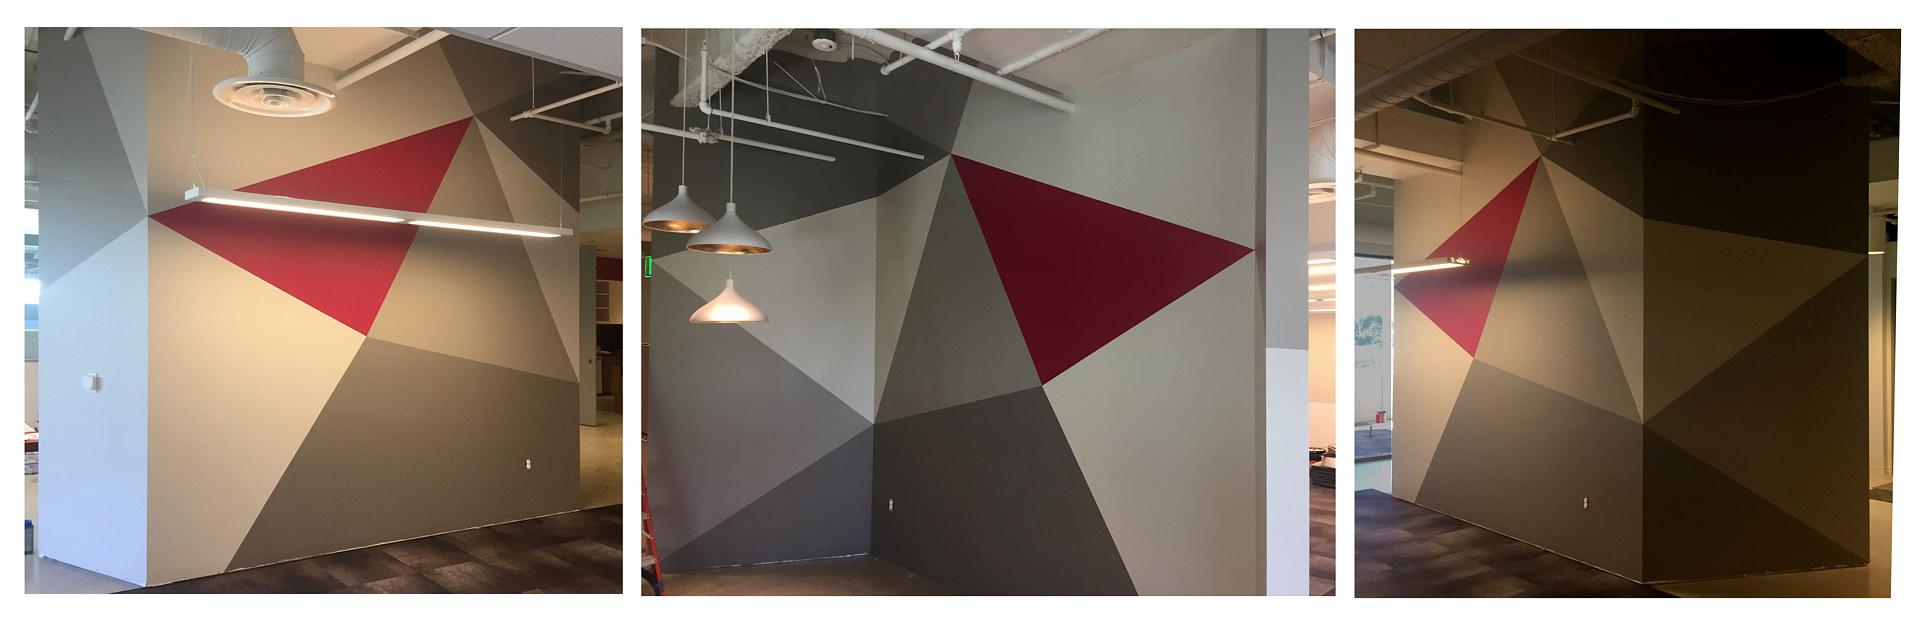 Graphic Mural for Office by Robert Milling